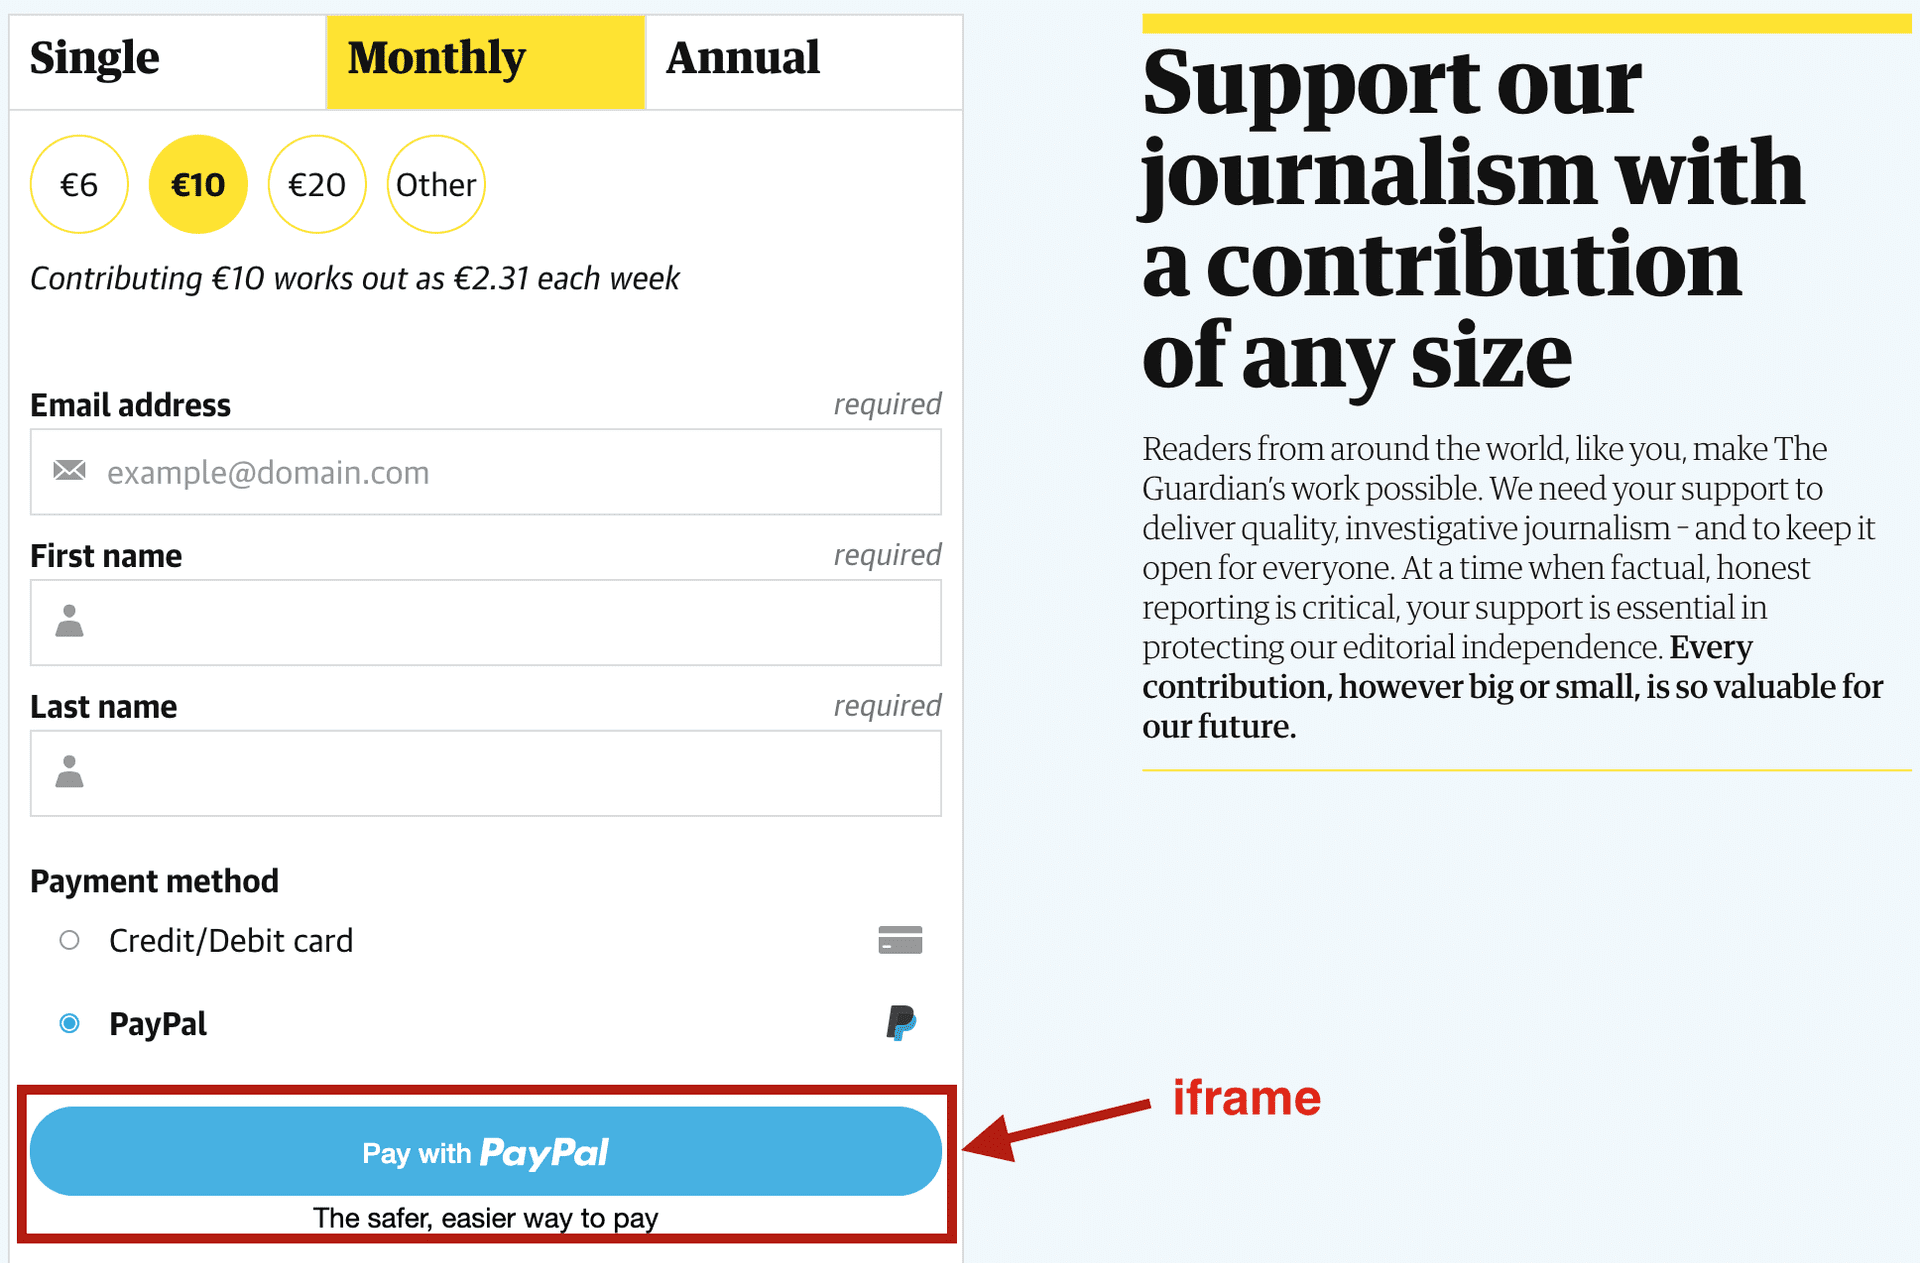 Payment screen from [guardian.co.uk](http://guardian.co.uk)